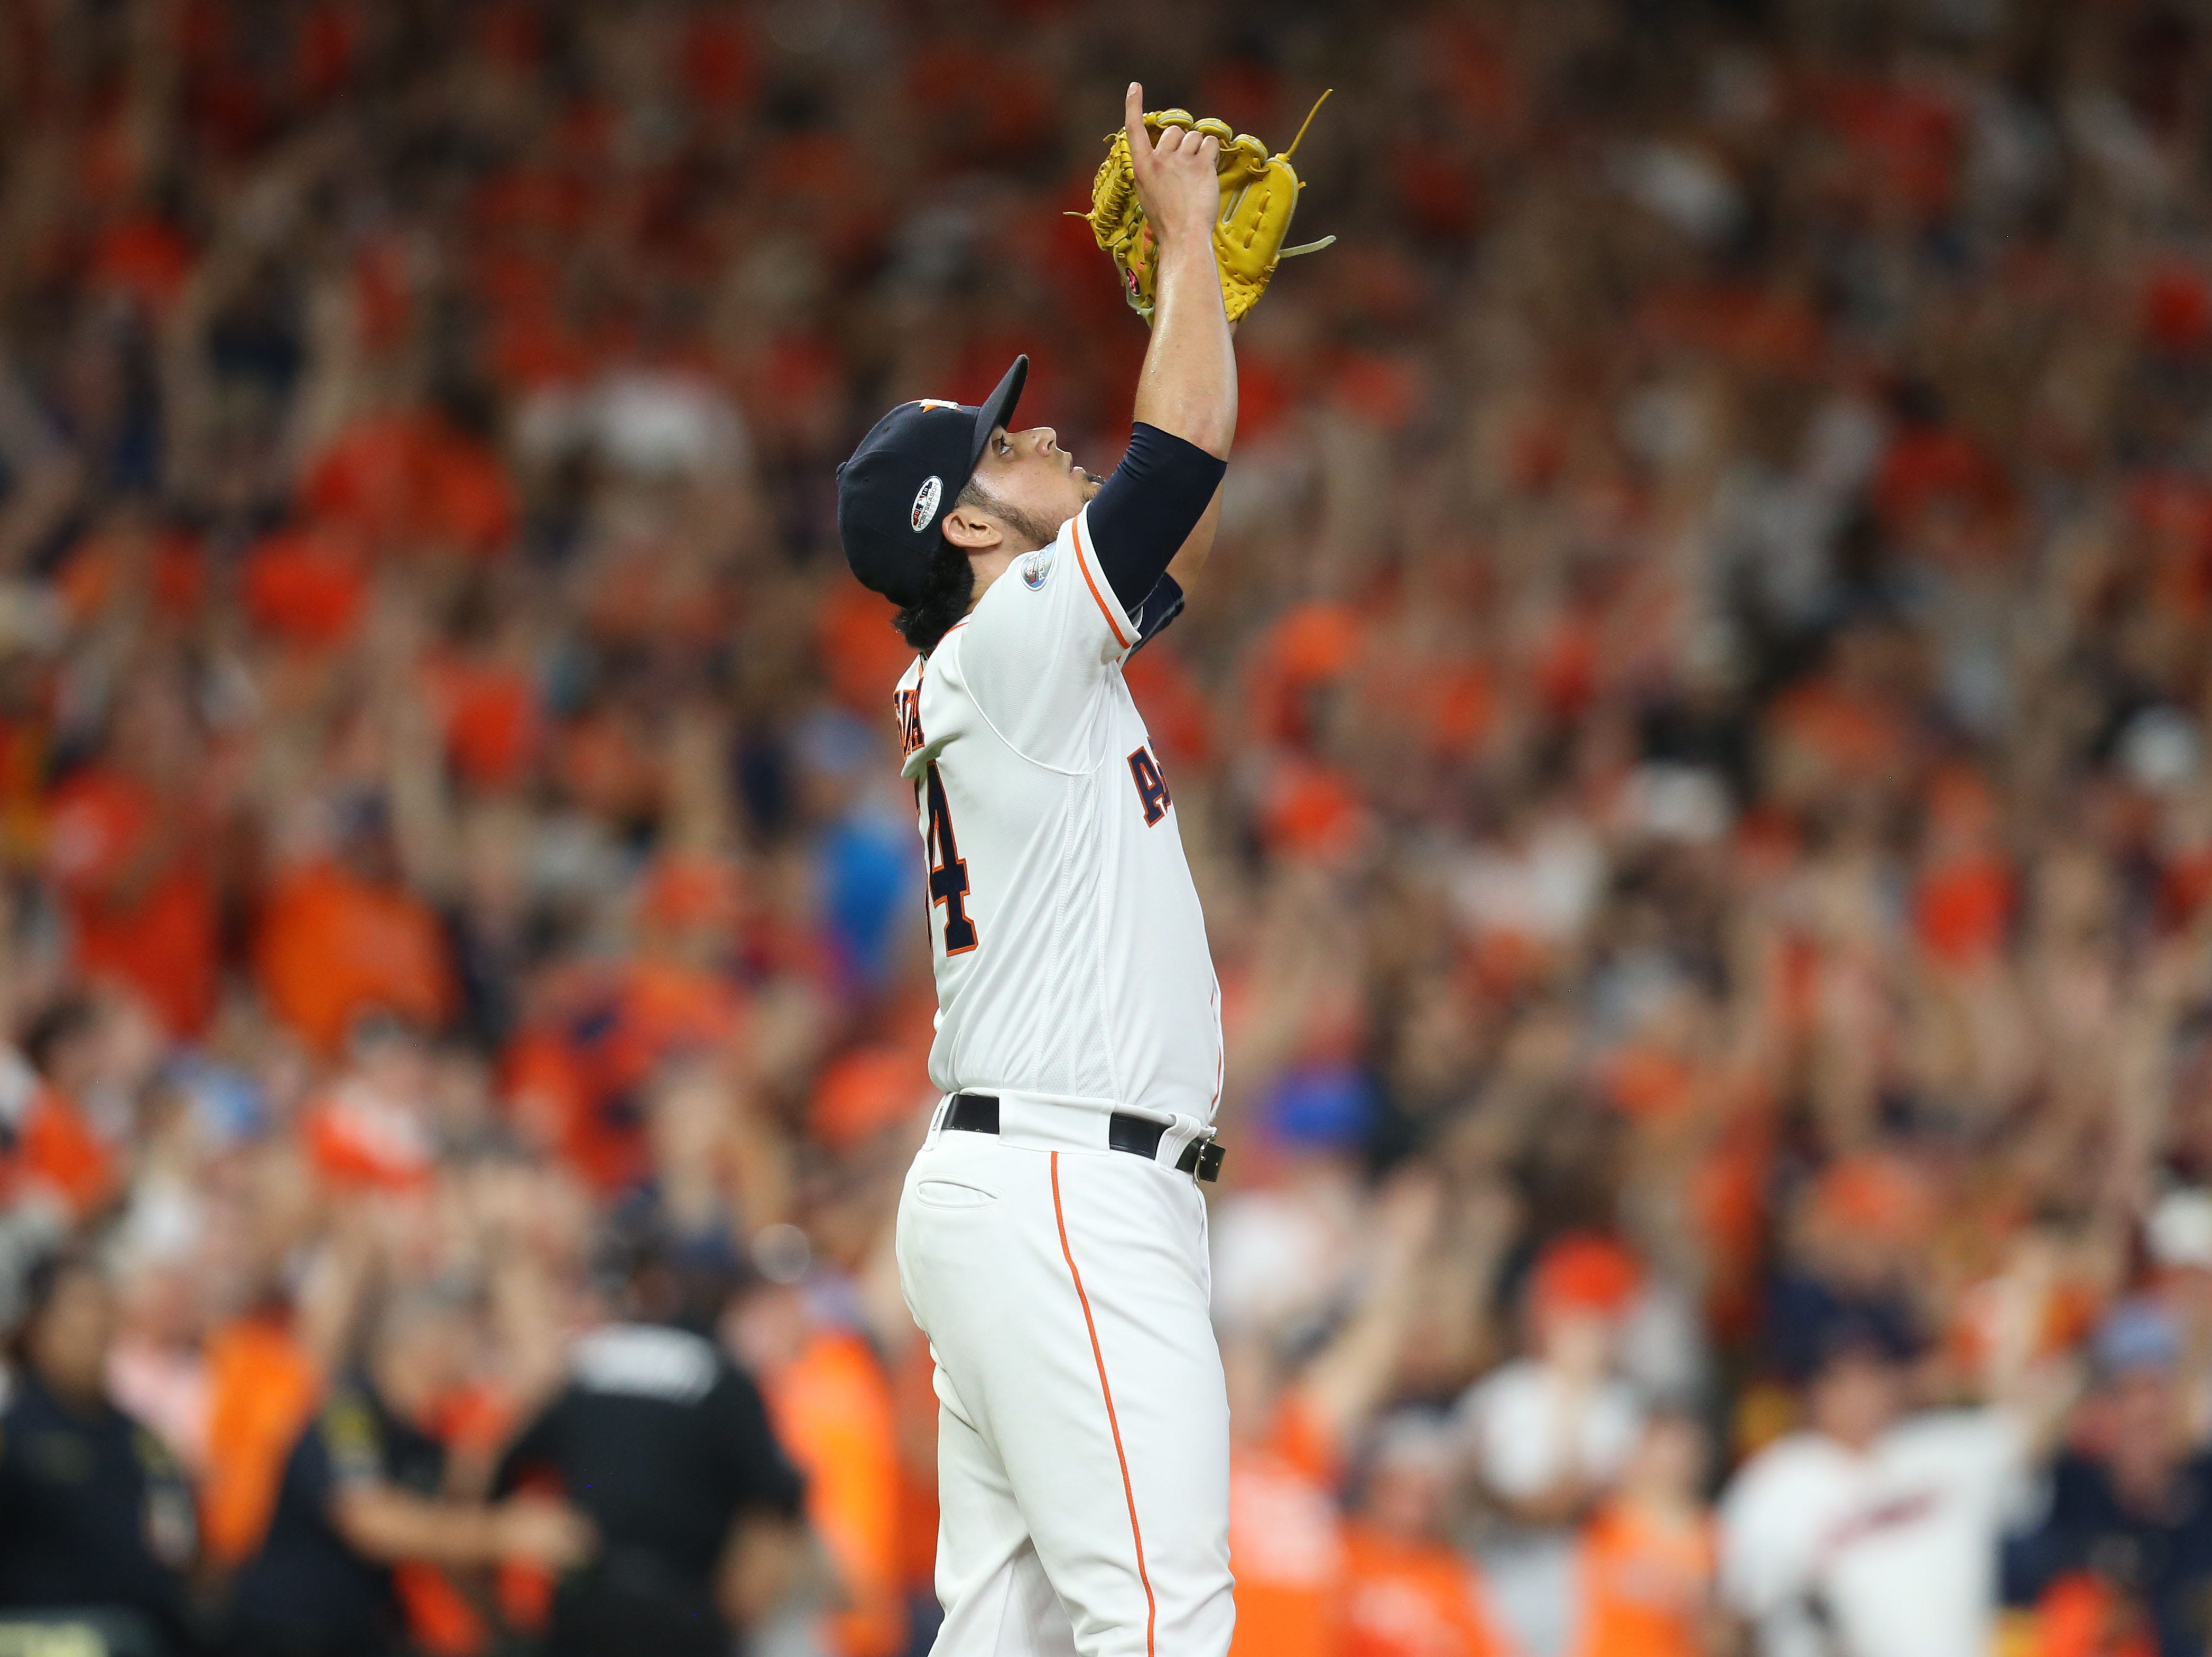 ALDS Game 2: Astros closer Roberto Osuna points to the sky after earning the save in Game 2.